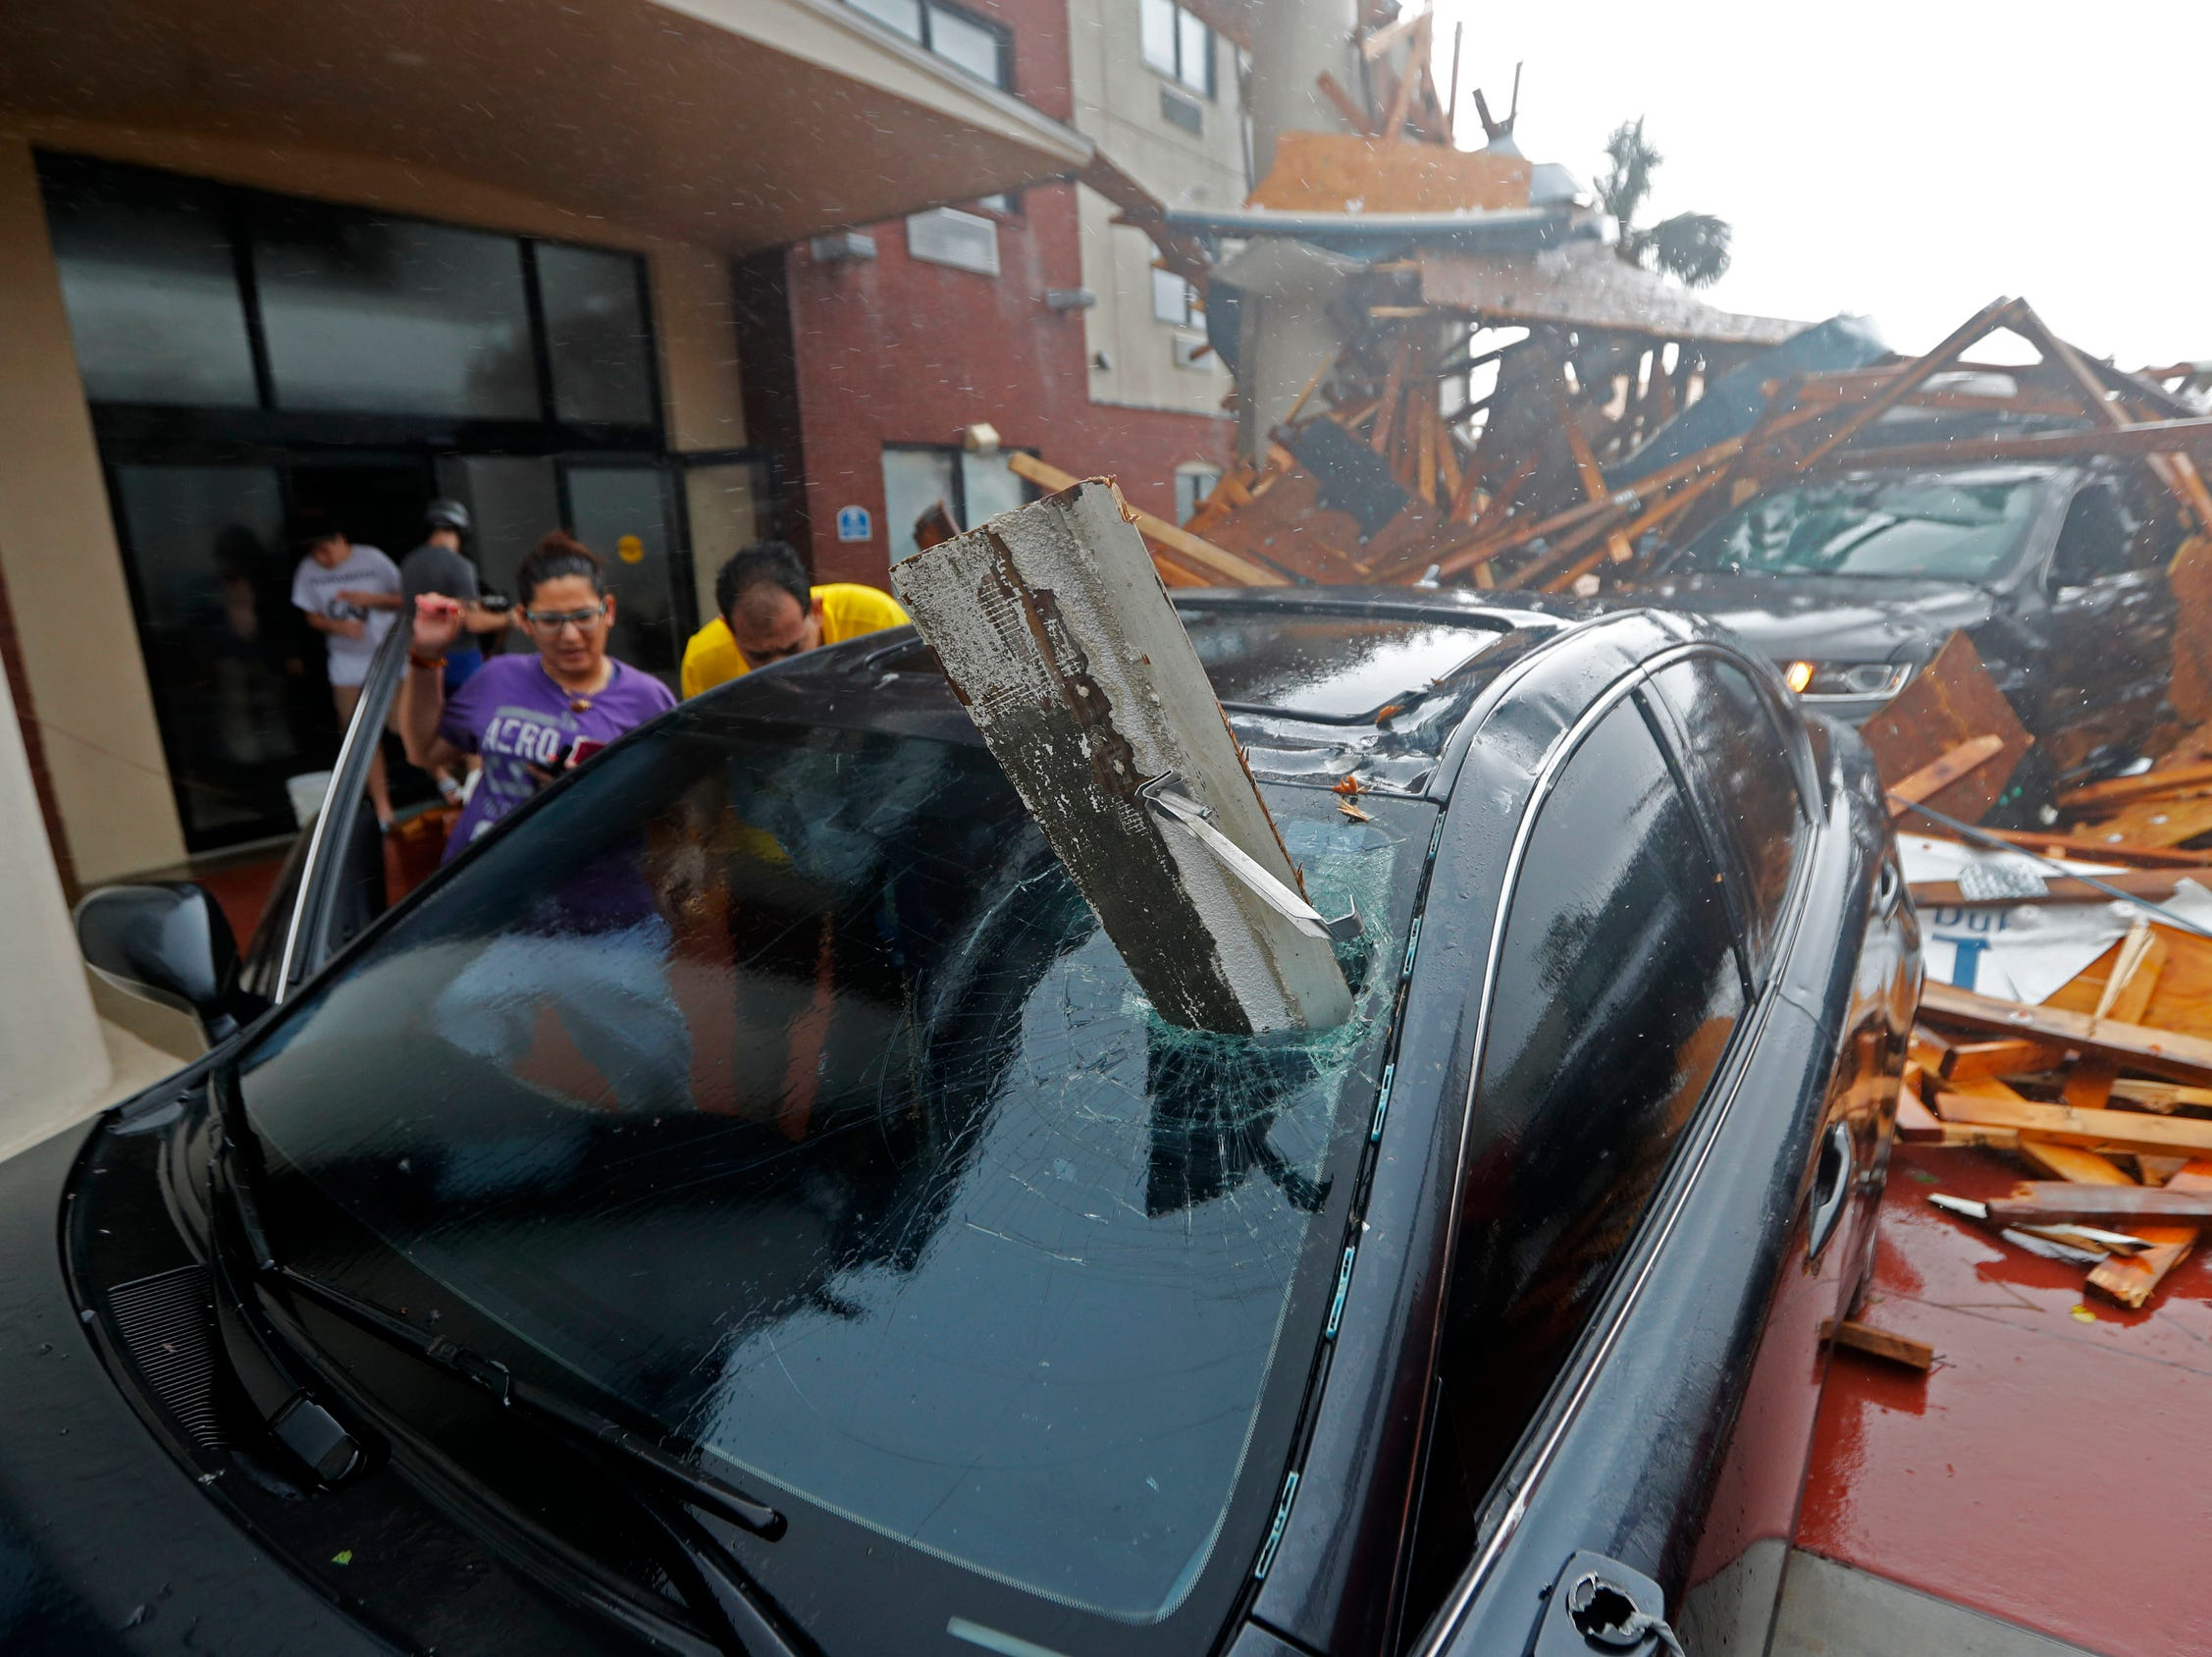 A woman checks on her impaled vehicle as Hurricane Michael passes through, after the hotel canopy had just collapsed, in Panama City Beach, Fla., on Wednesday.